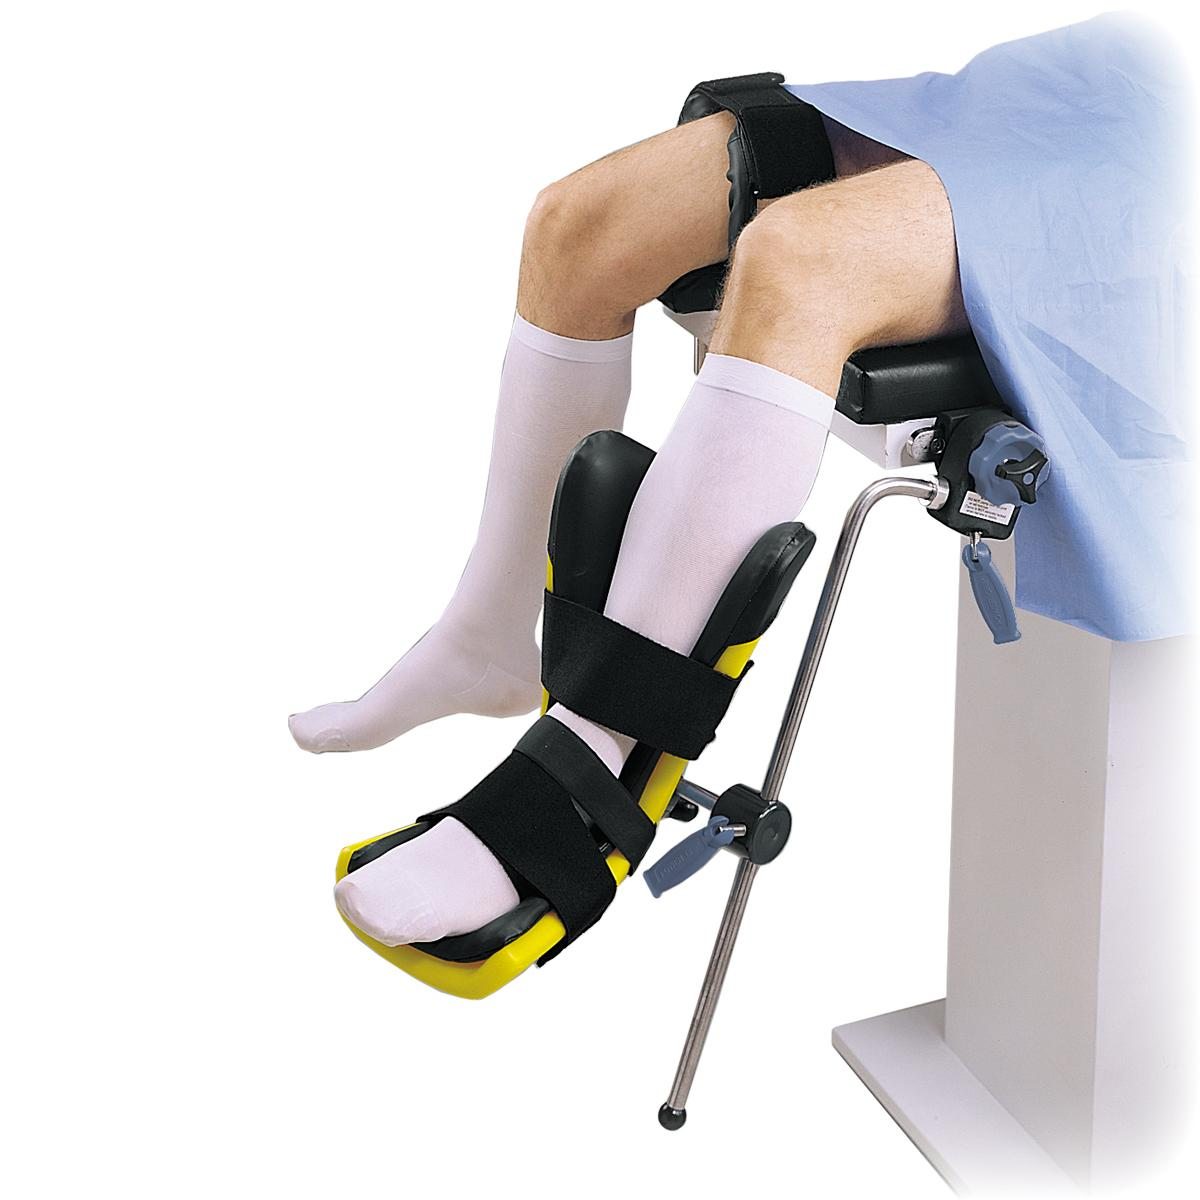 Leg Holder Disposable Pad, R-S4133-V, front view